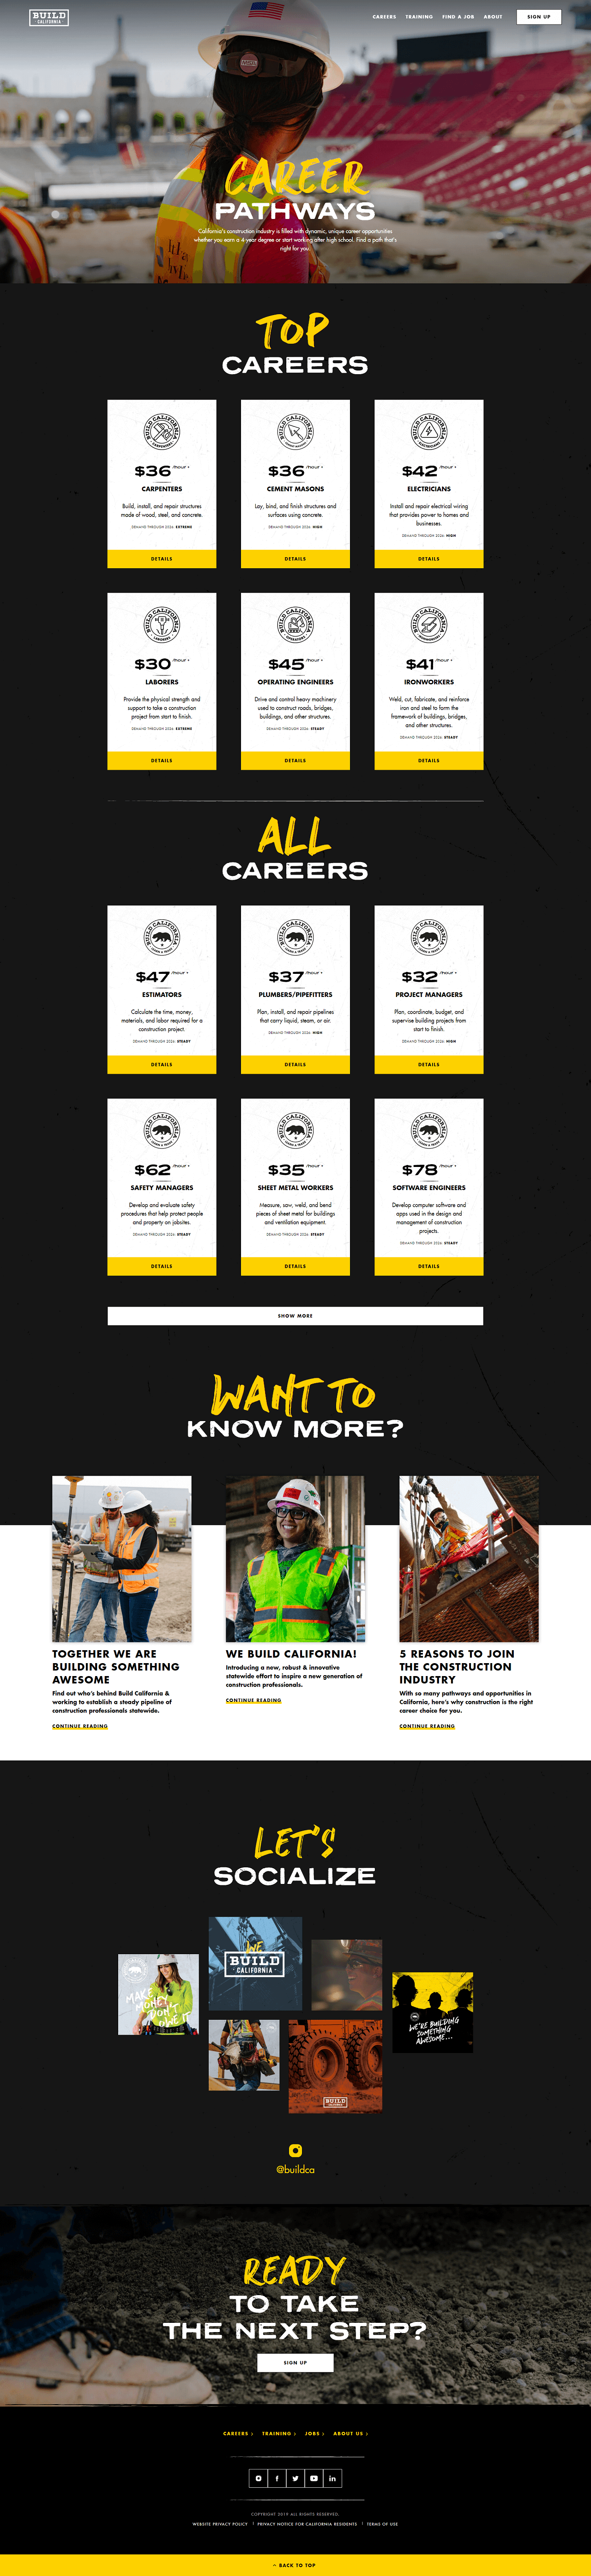 Build California site carrers page